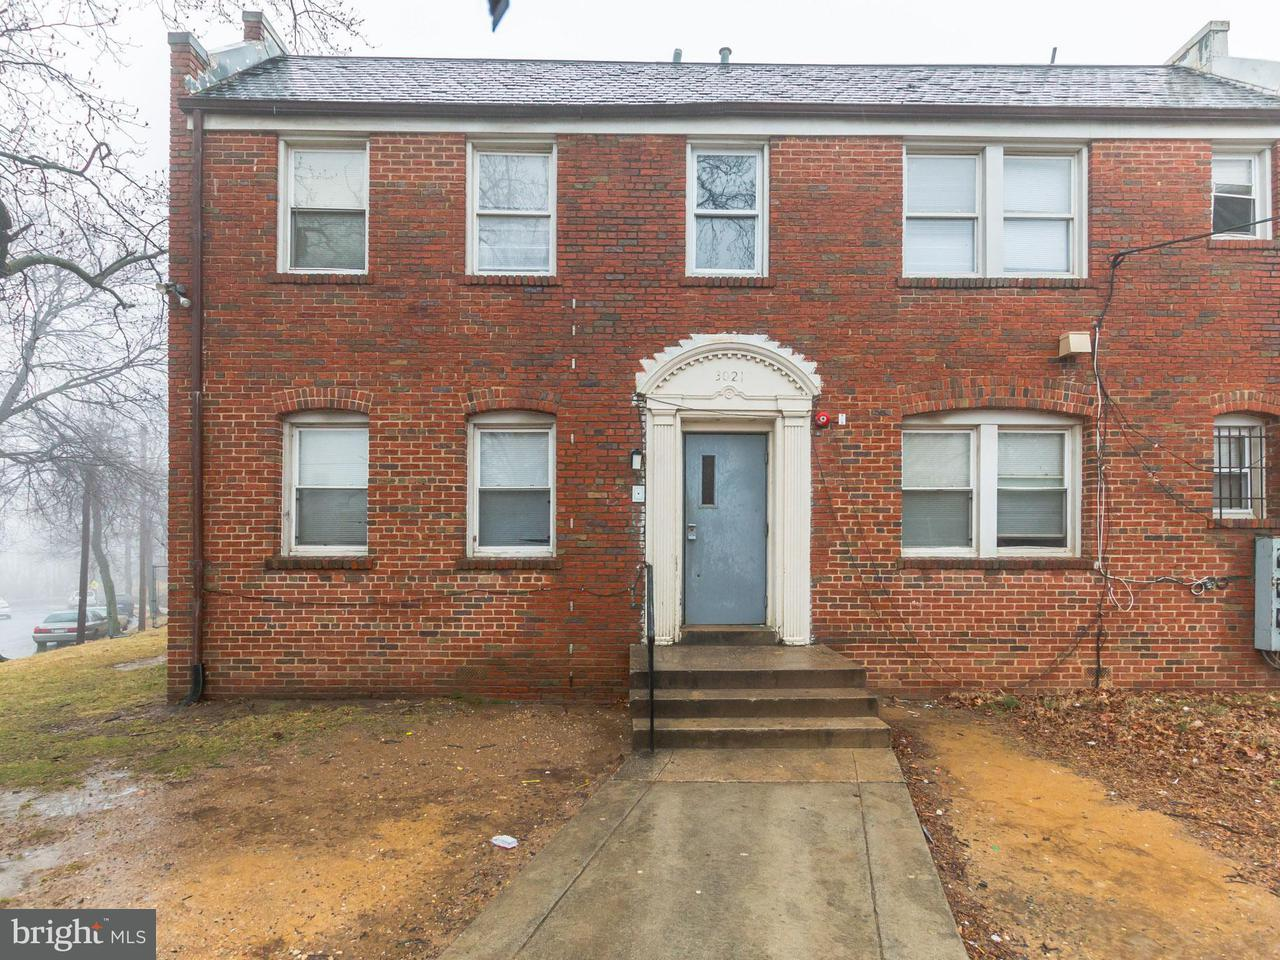 Other Residential for Sale at 3021 4th St SE Washington, District Of Columbia 20032 United States